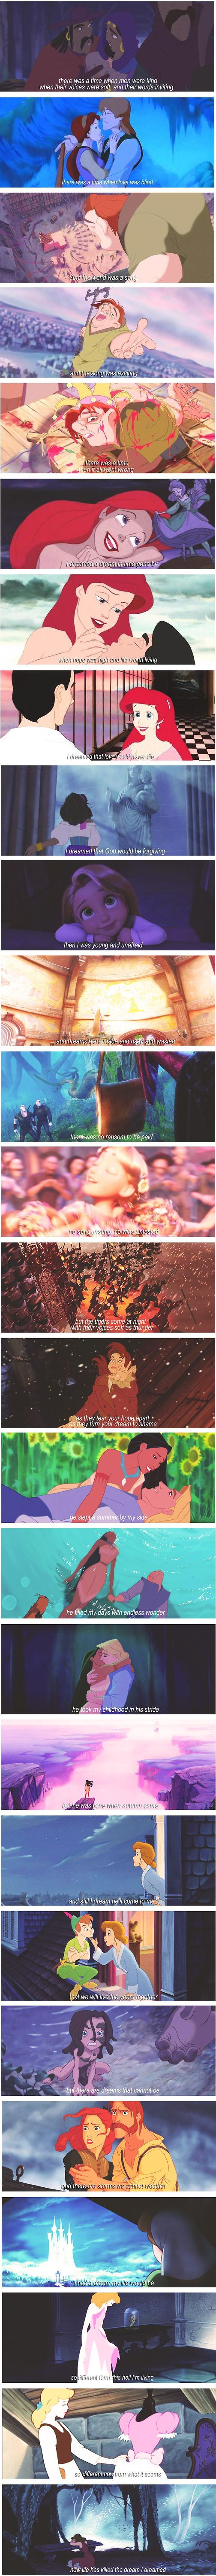 I Dreamed a Dream + Disney/other animated cartoons.. I love this. Almost cried...